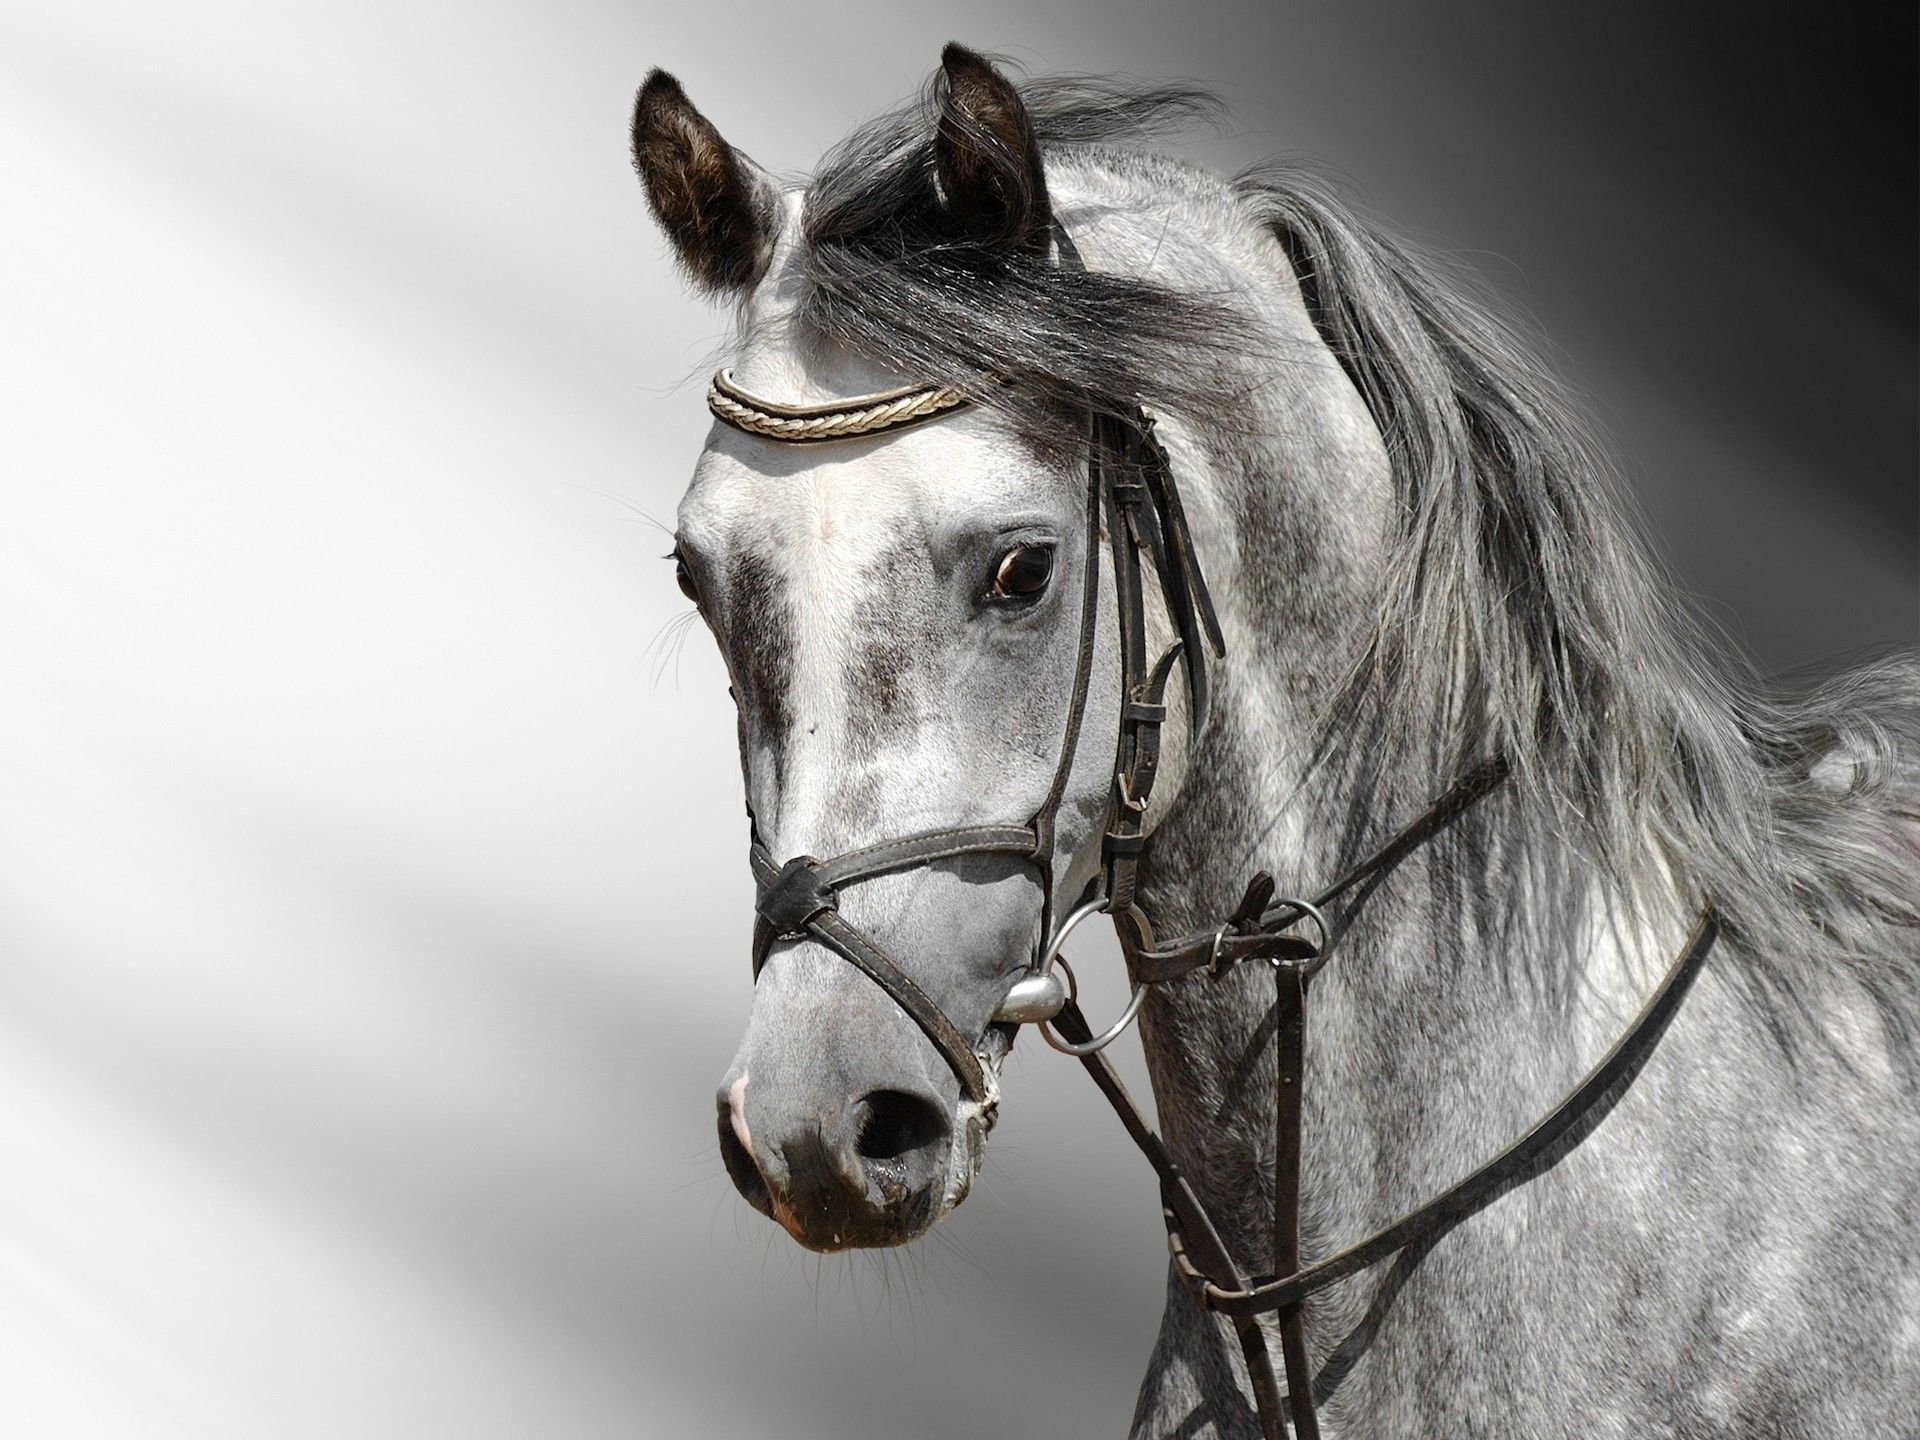 Great Wallpaper Horse Ultra Hd - 6f6210c24f2fd29cb53b49a91322e94a  Pic_605811.jpg